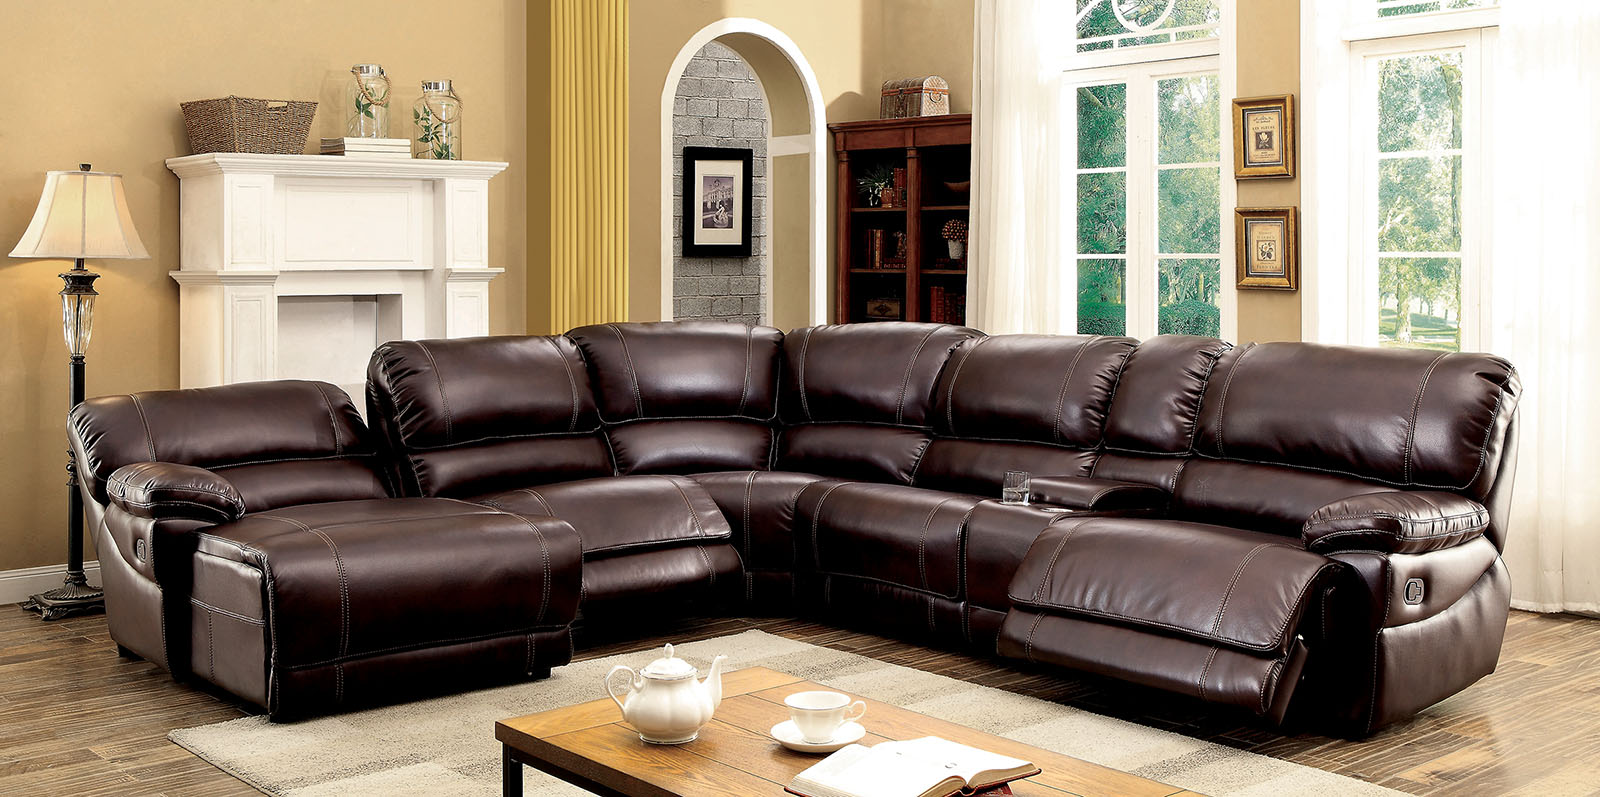 Furniture of america 6131br brown reclining chaise console for Brown sectional with chaise